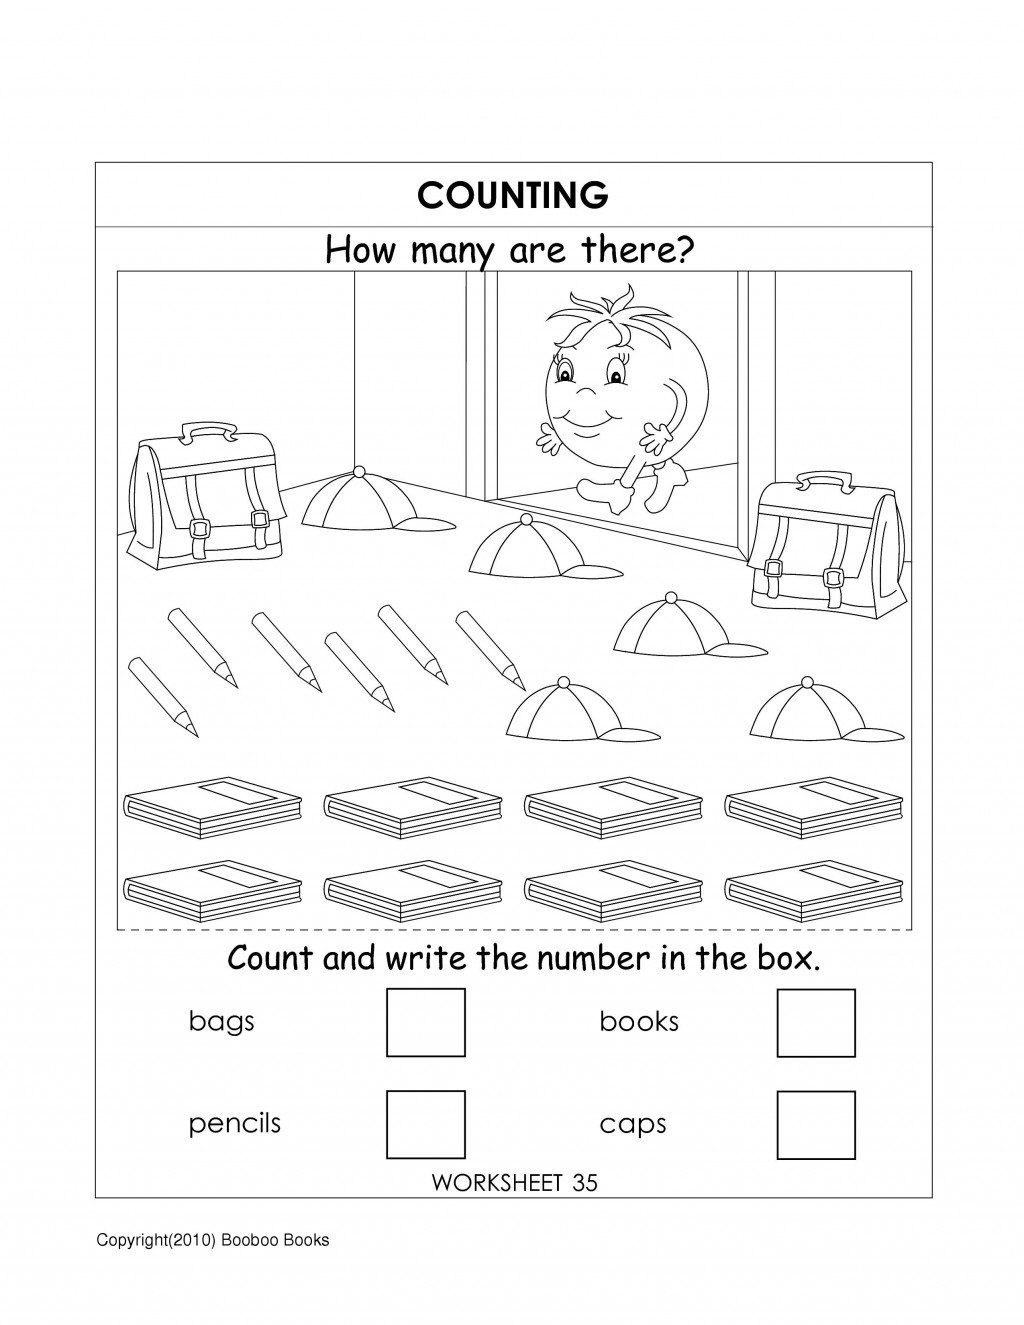 Ukg Kindergarten Worksheets